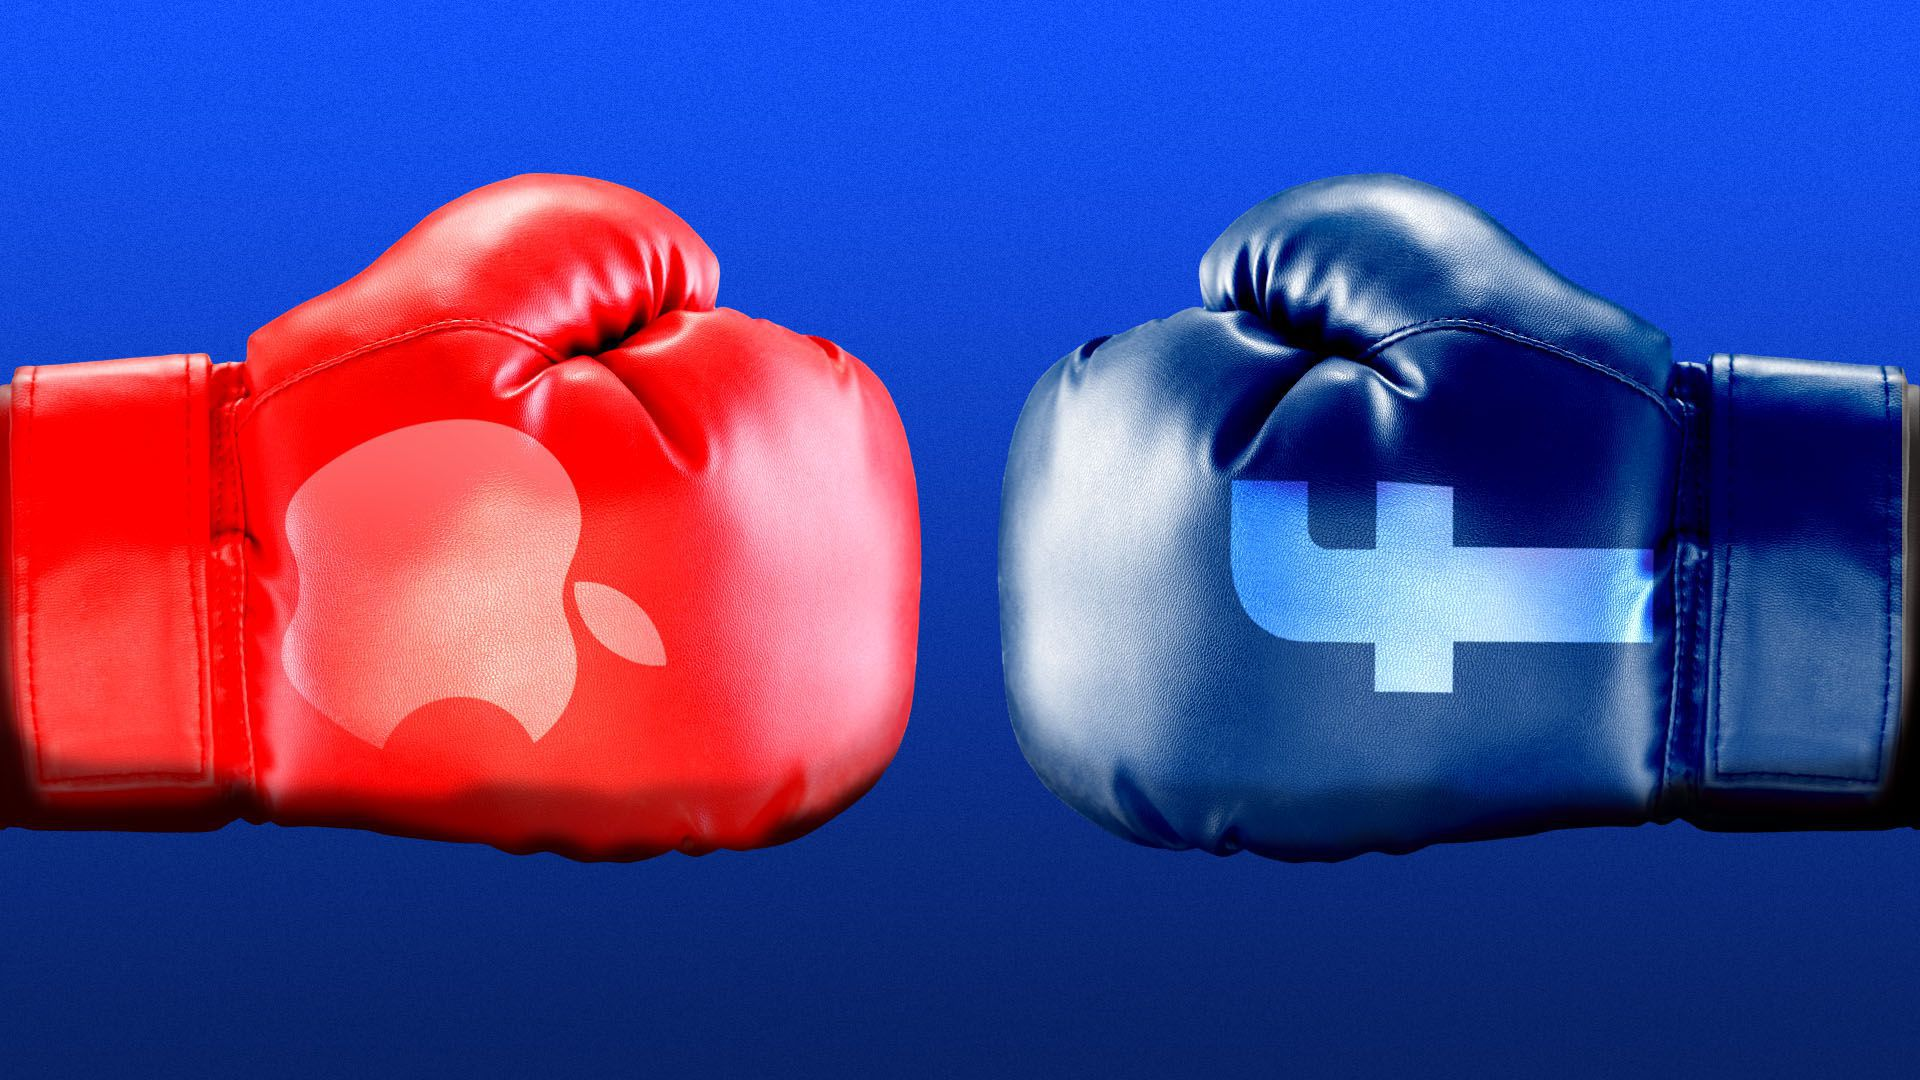 Illustration of two different colored boxing gloves with the facebook and apple logos on them